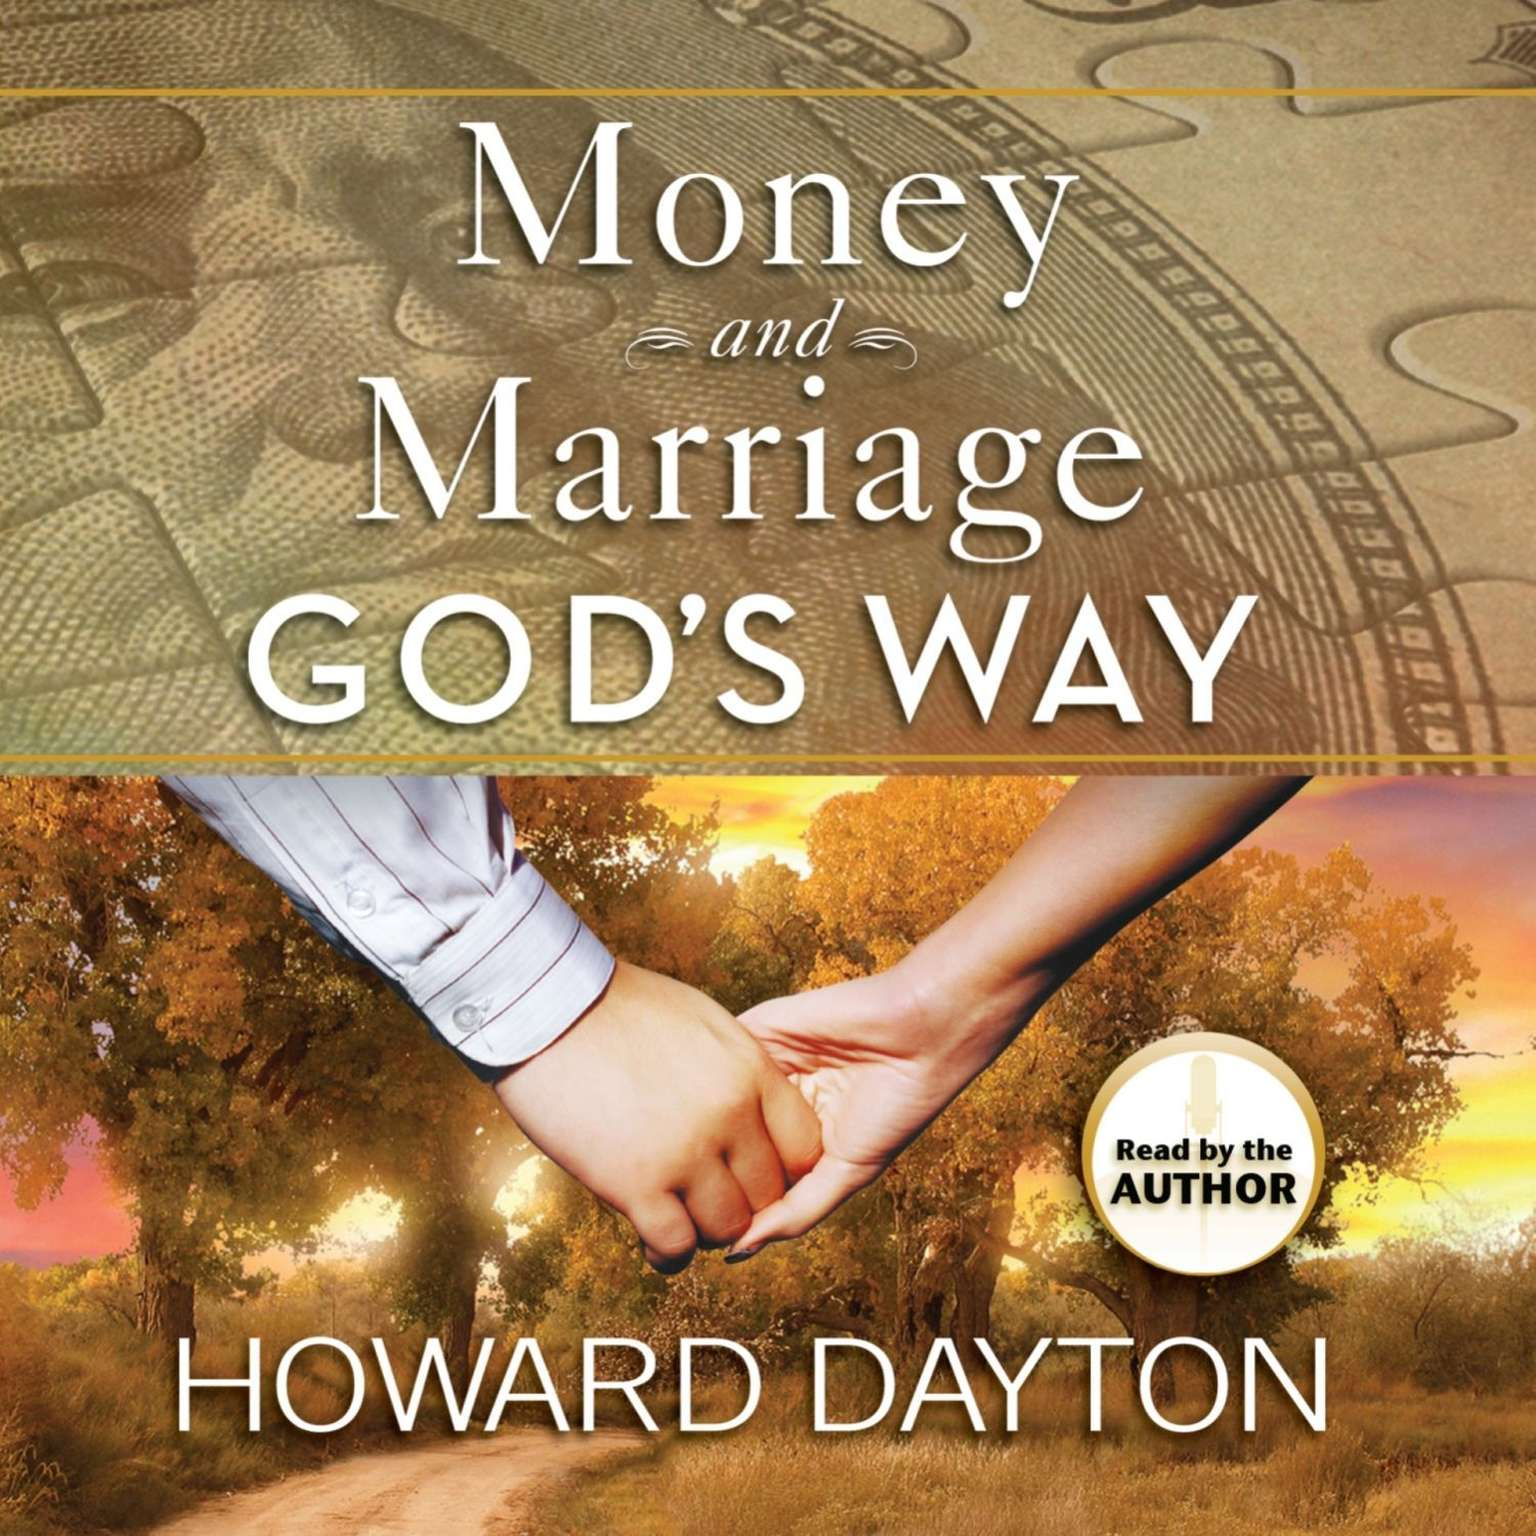 dating and marriage gods way video